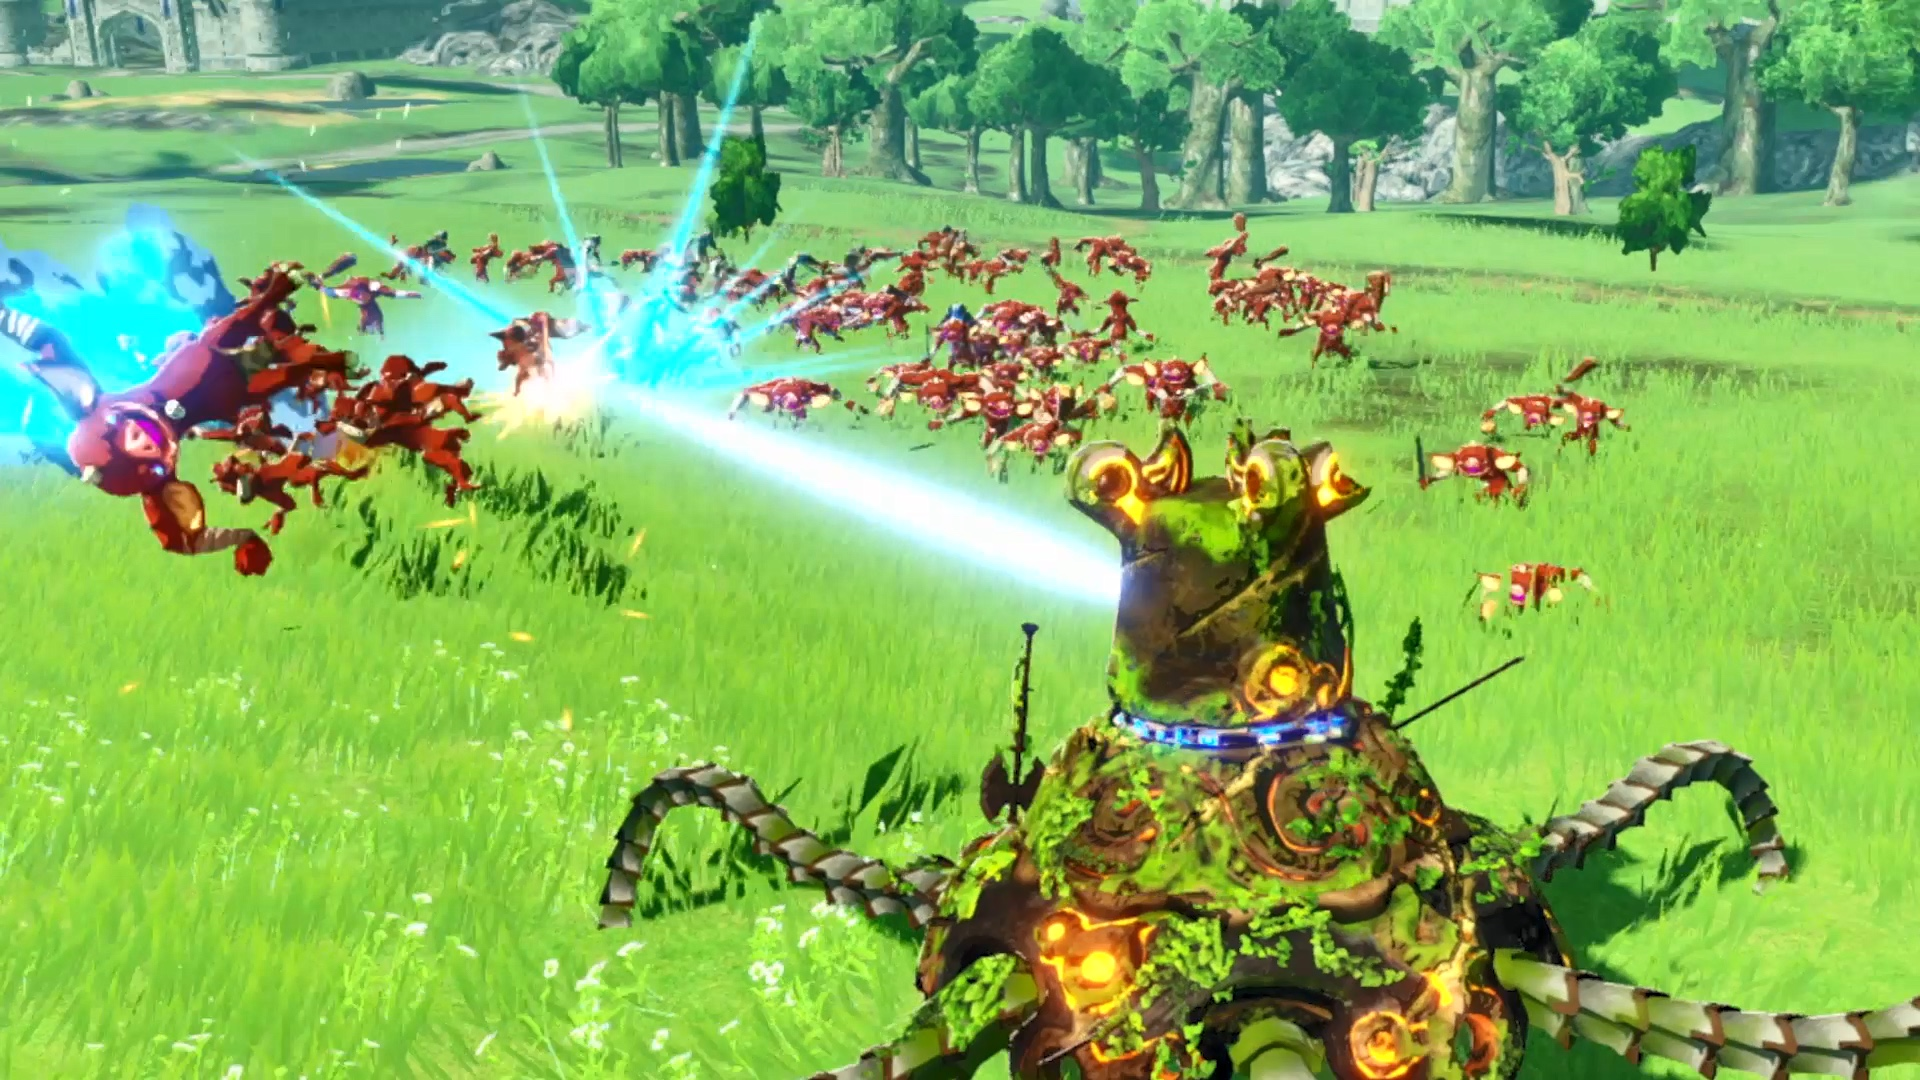 A Guardian kills Bokoblins with an energy beam in a screenshot from Hyrule Warriors: Age of Calamity